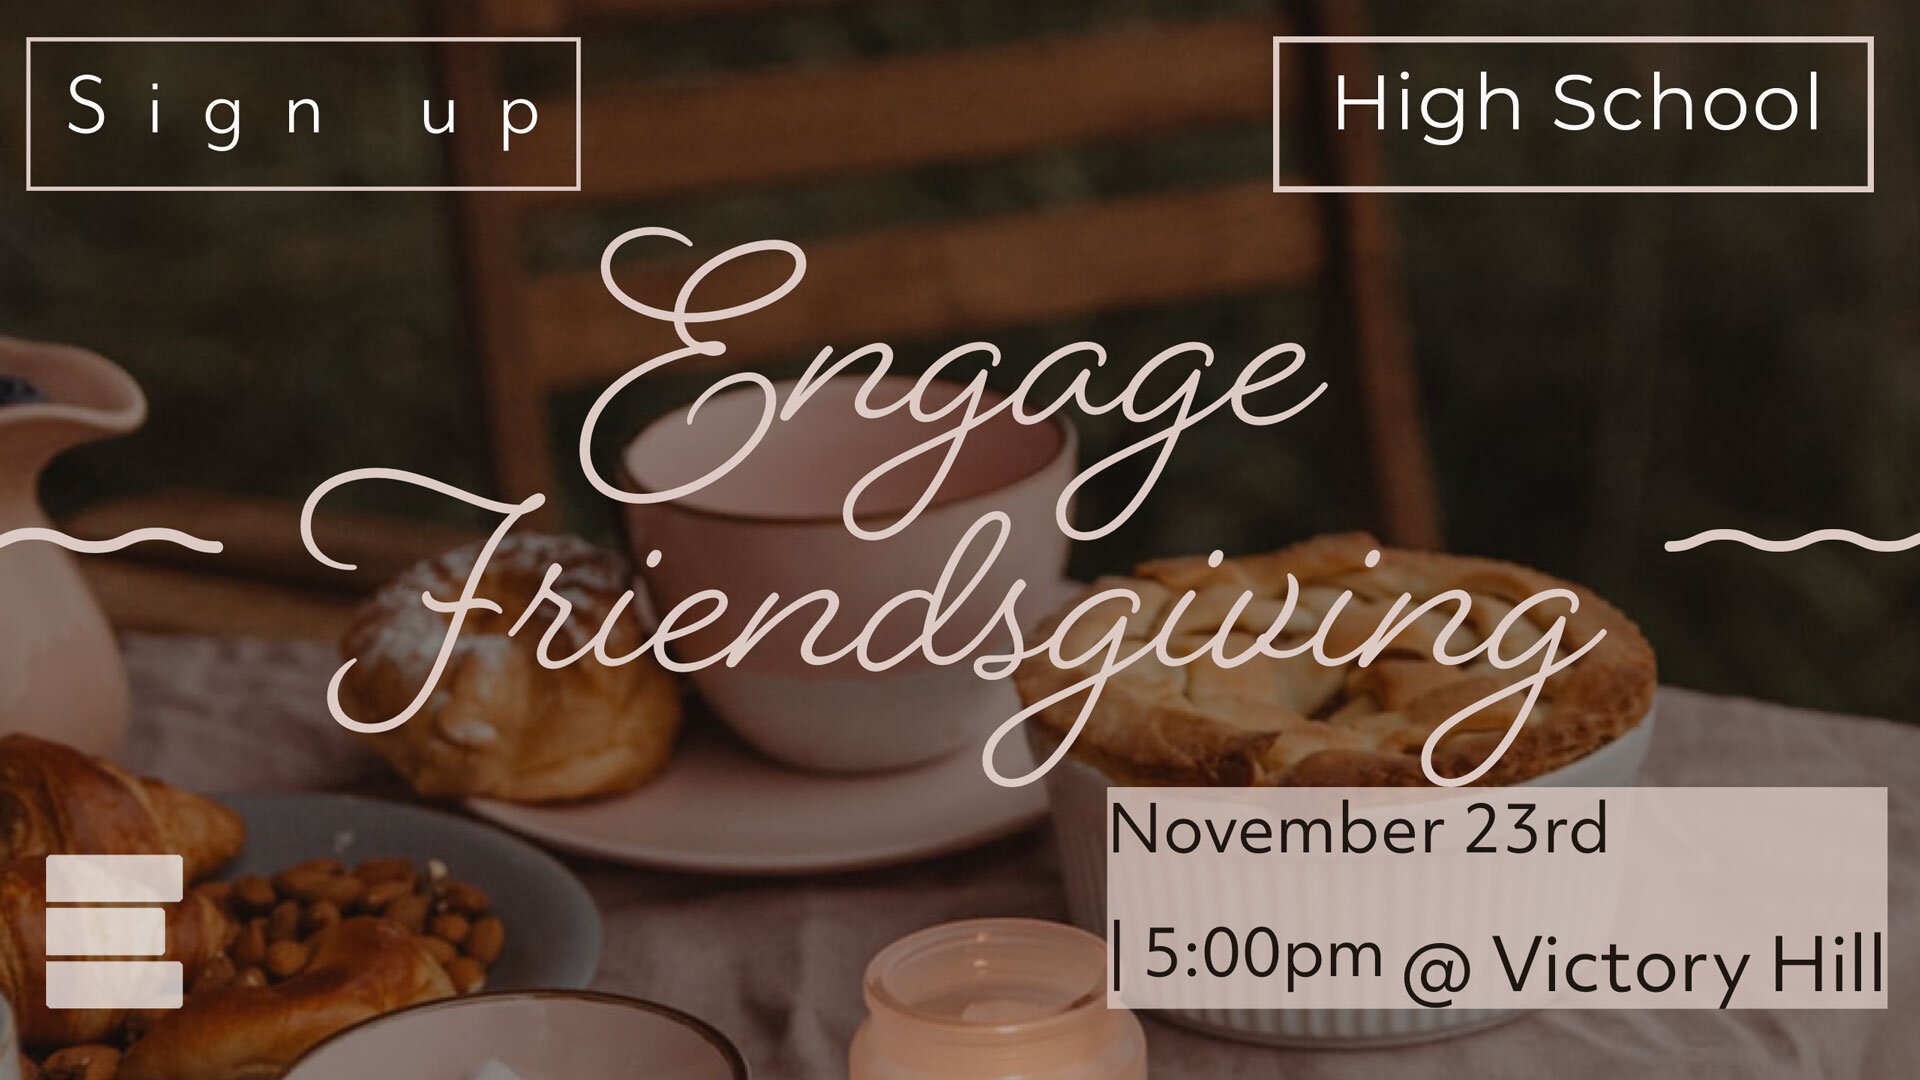 engagefriendsgiving.jpg